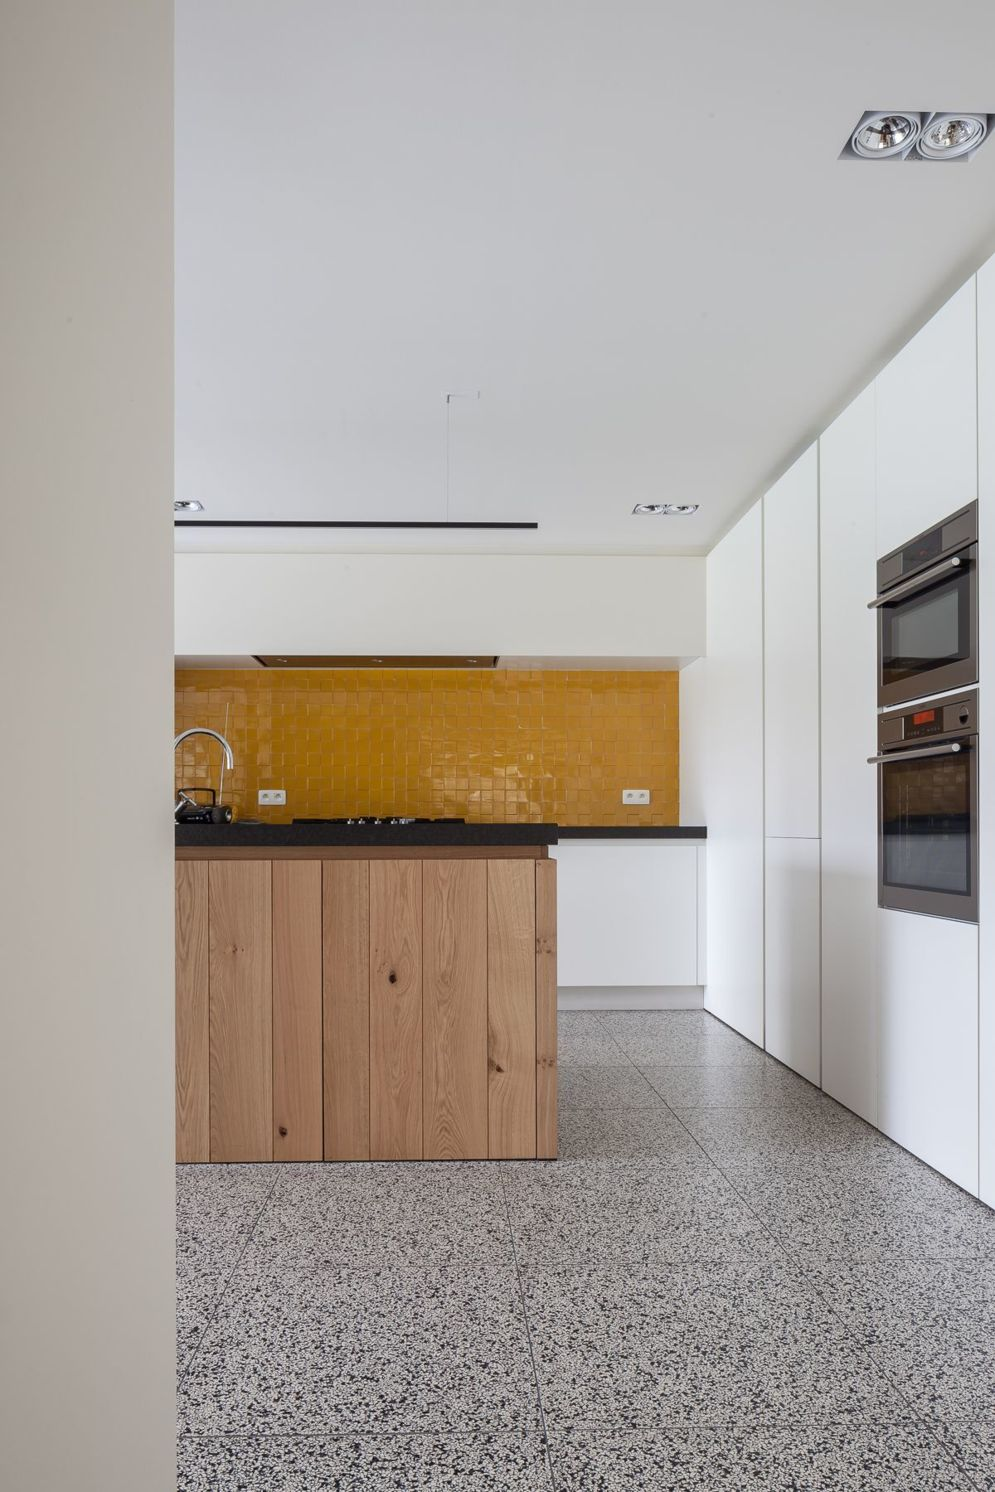 Artsy terrazzo flooring bringing back the classy vintage accent combined in modern simple interior style Image 15